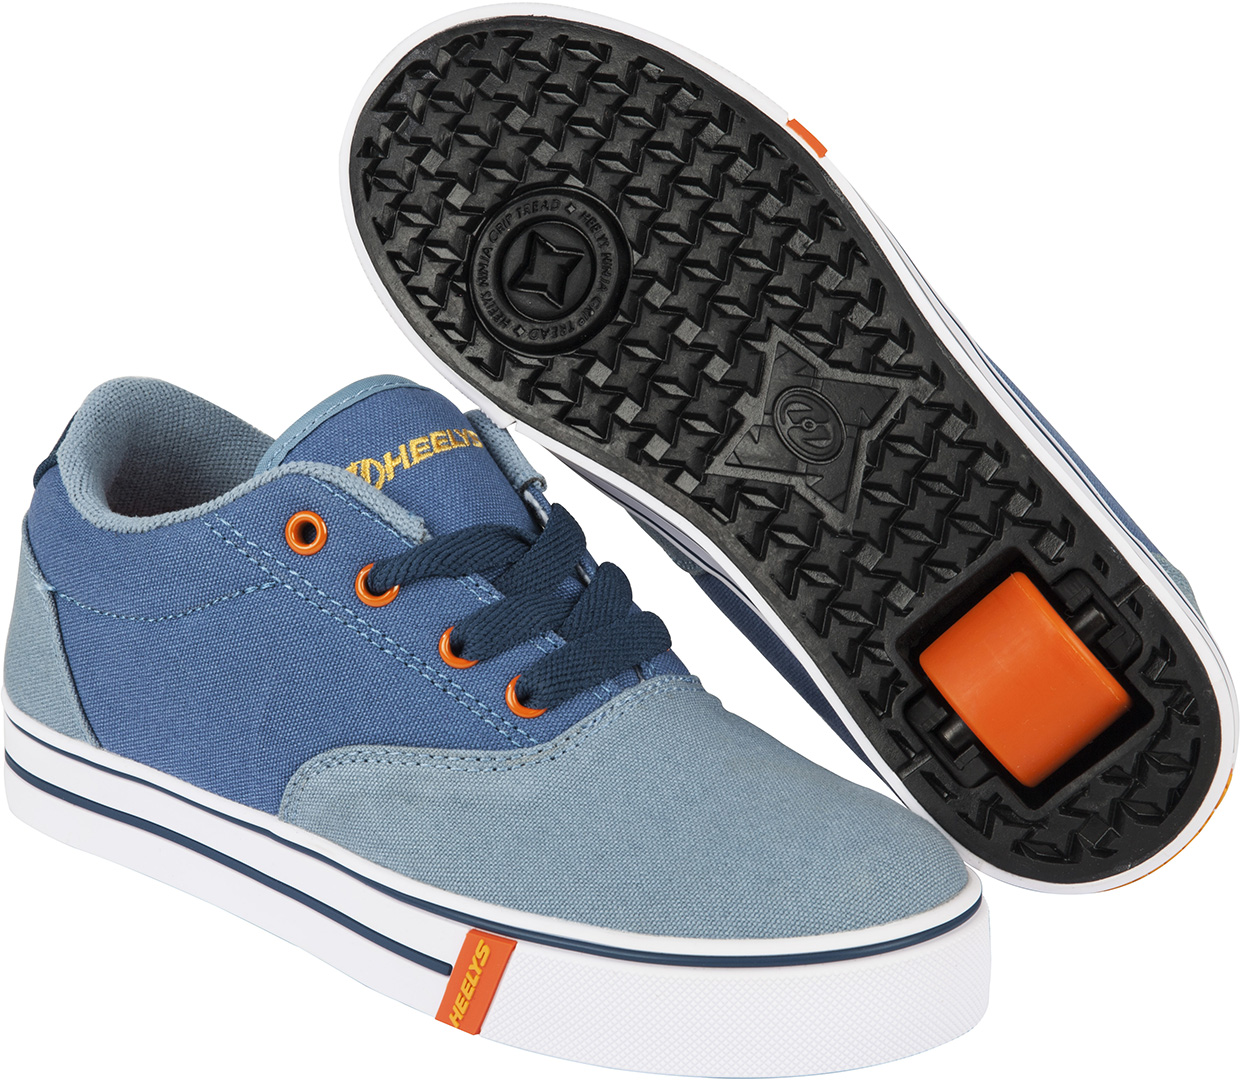 Schuh Mit Rollen Heelys Launch 2 Schuh 2016 Denim Light Blue Orange